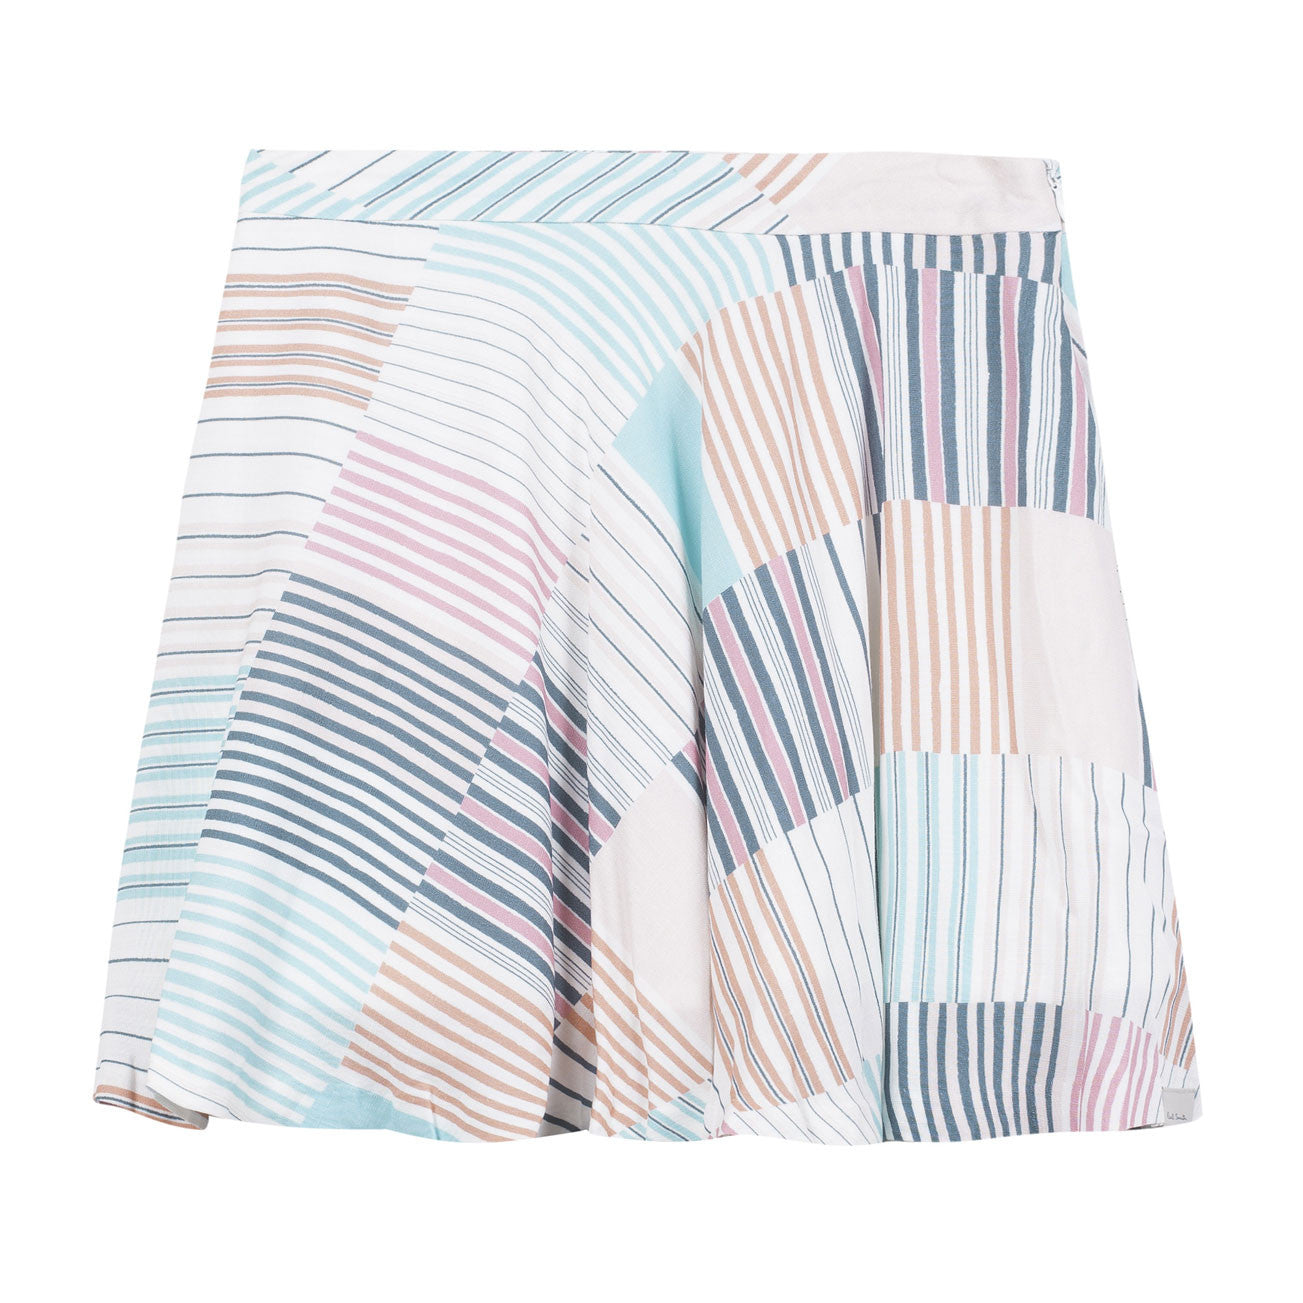 Paul Smith Pastel Stripe Skirt - Ladida